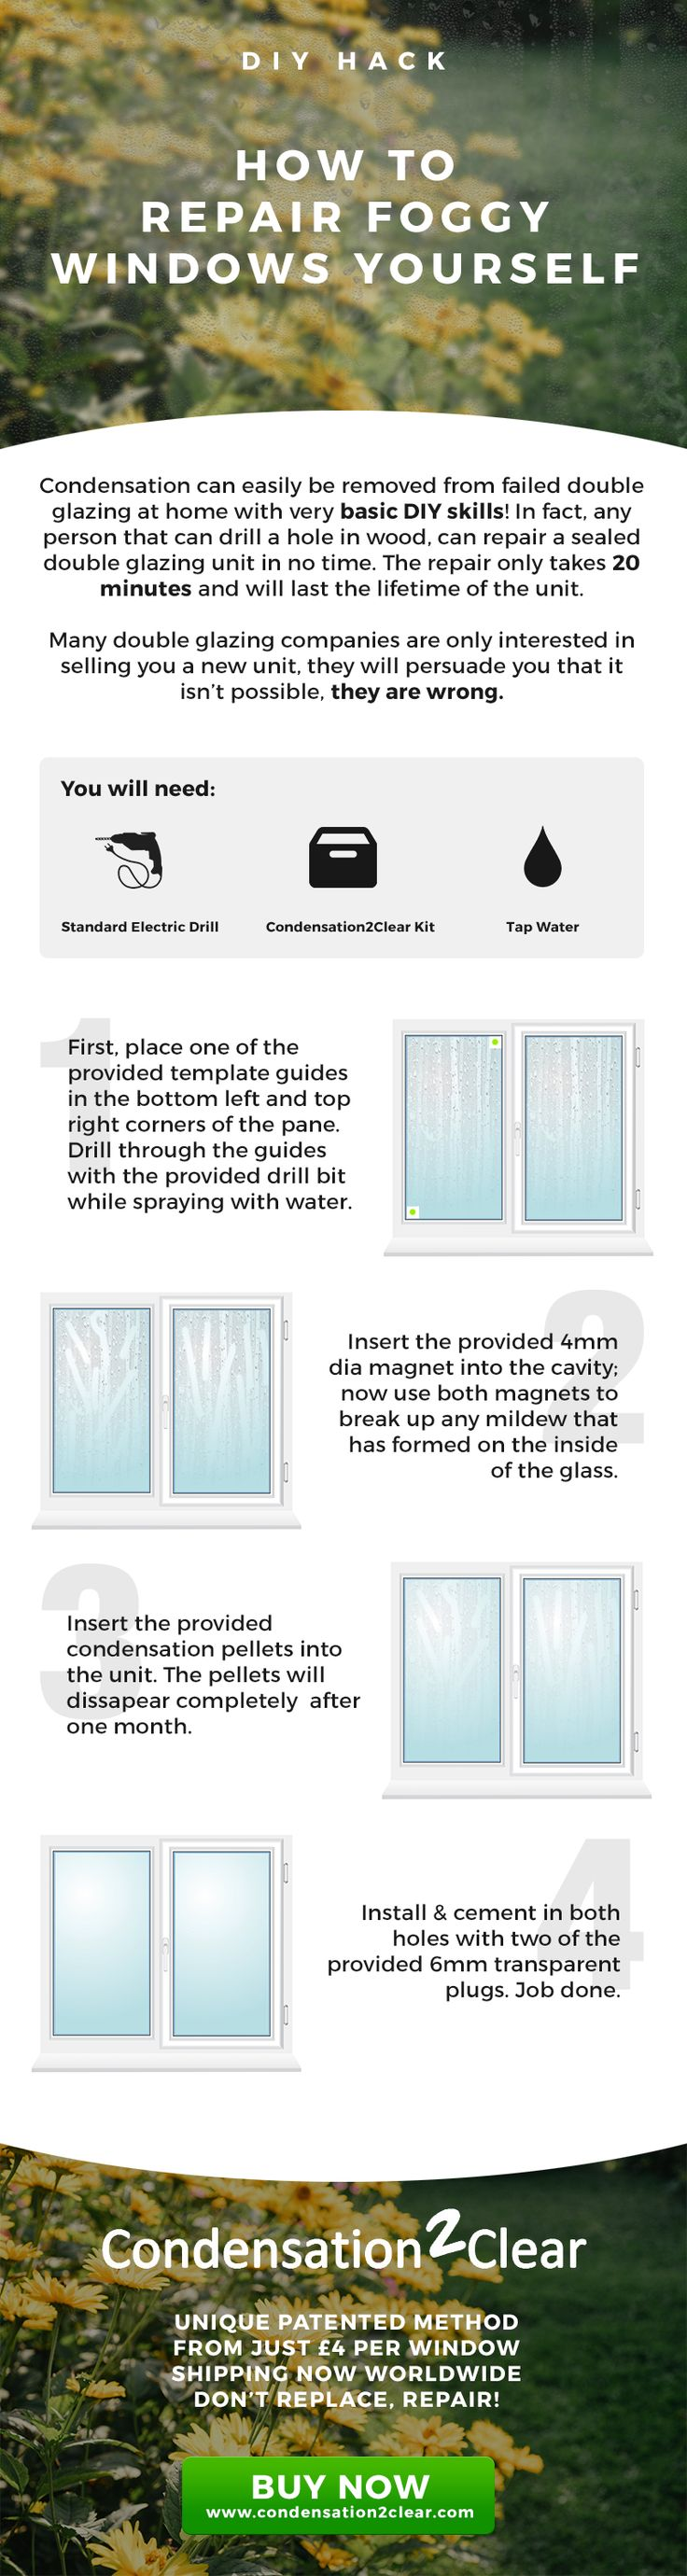 Condensation Can Easily Be Removed From Failed Foggy Double Glazing Windows  At Home With Very Basic